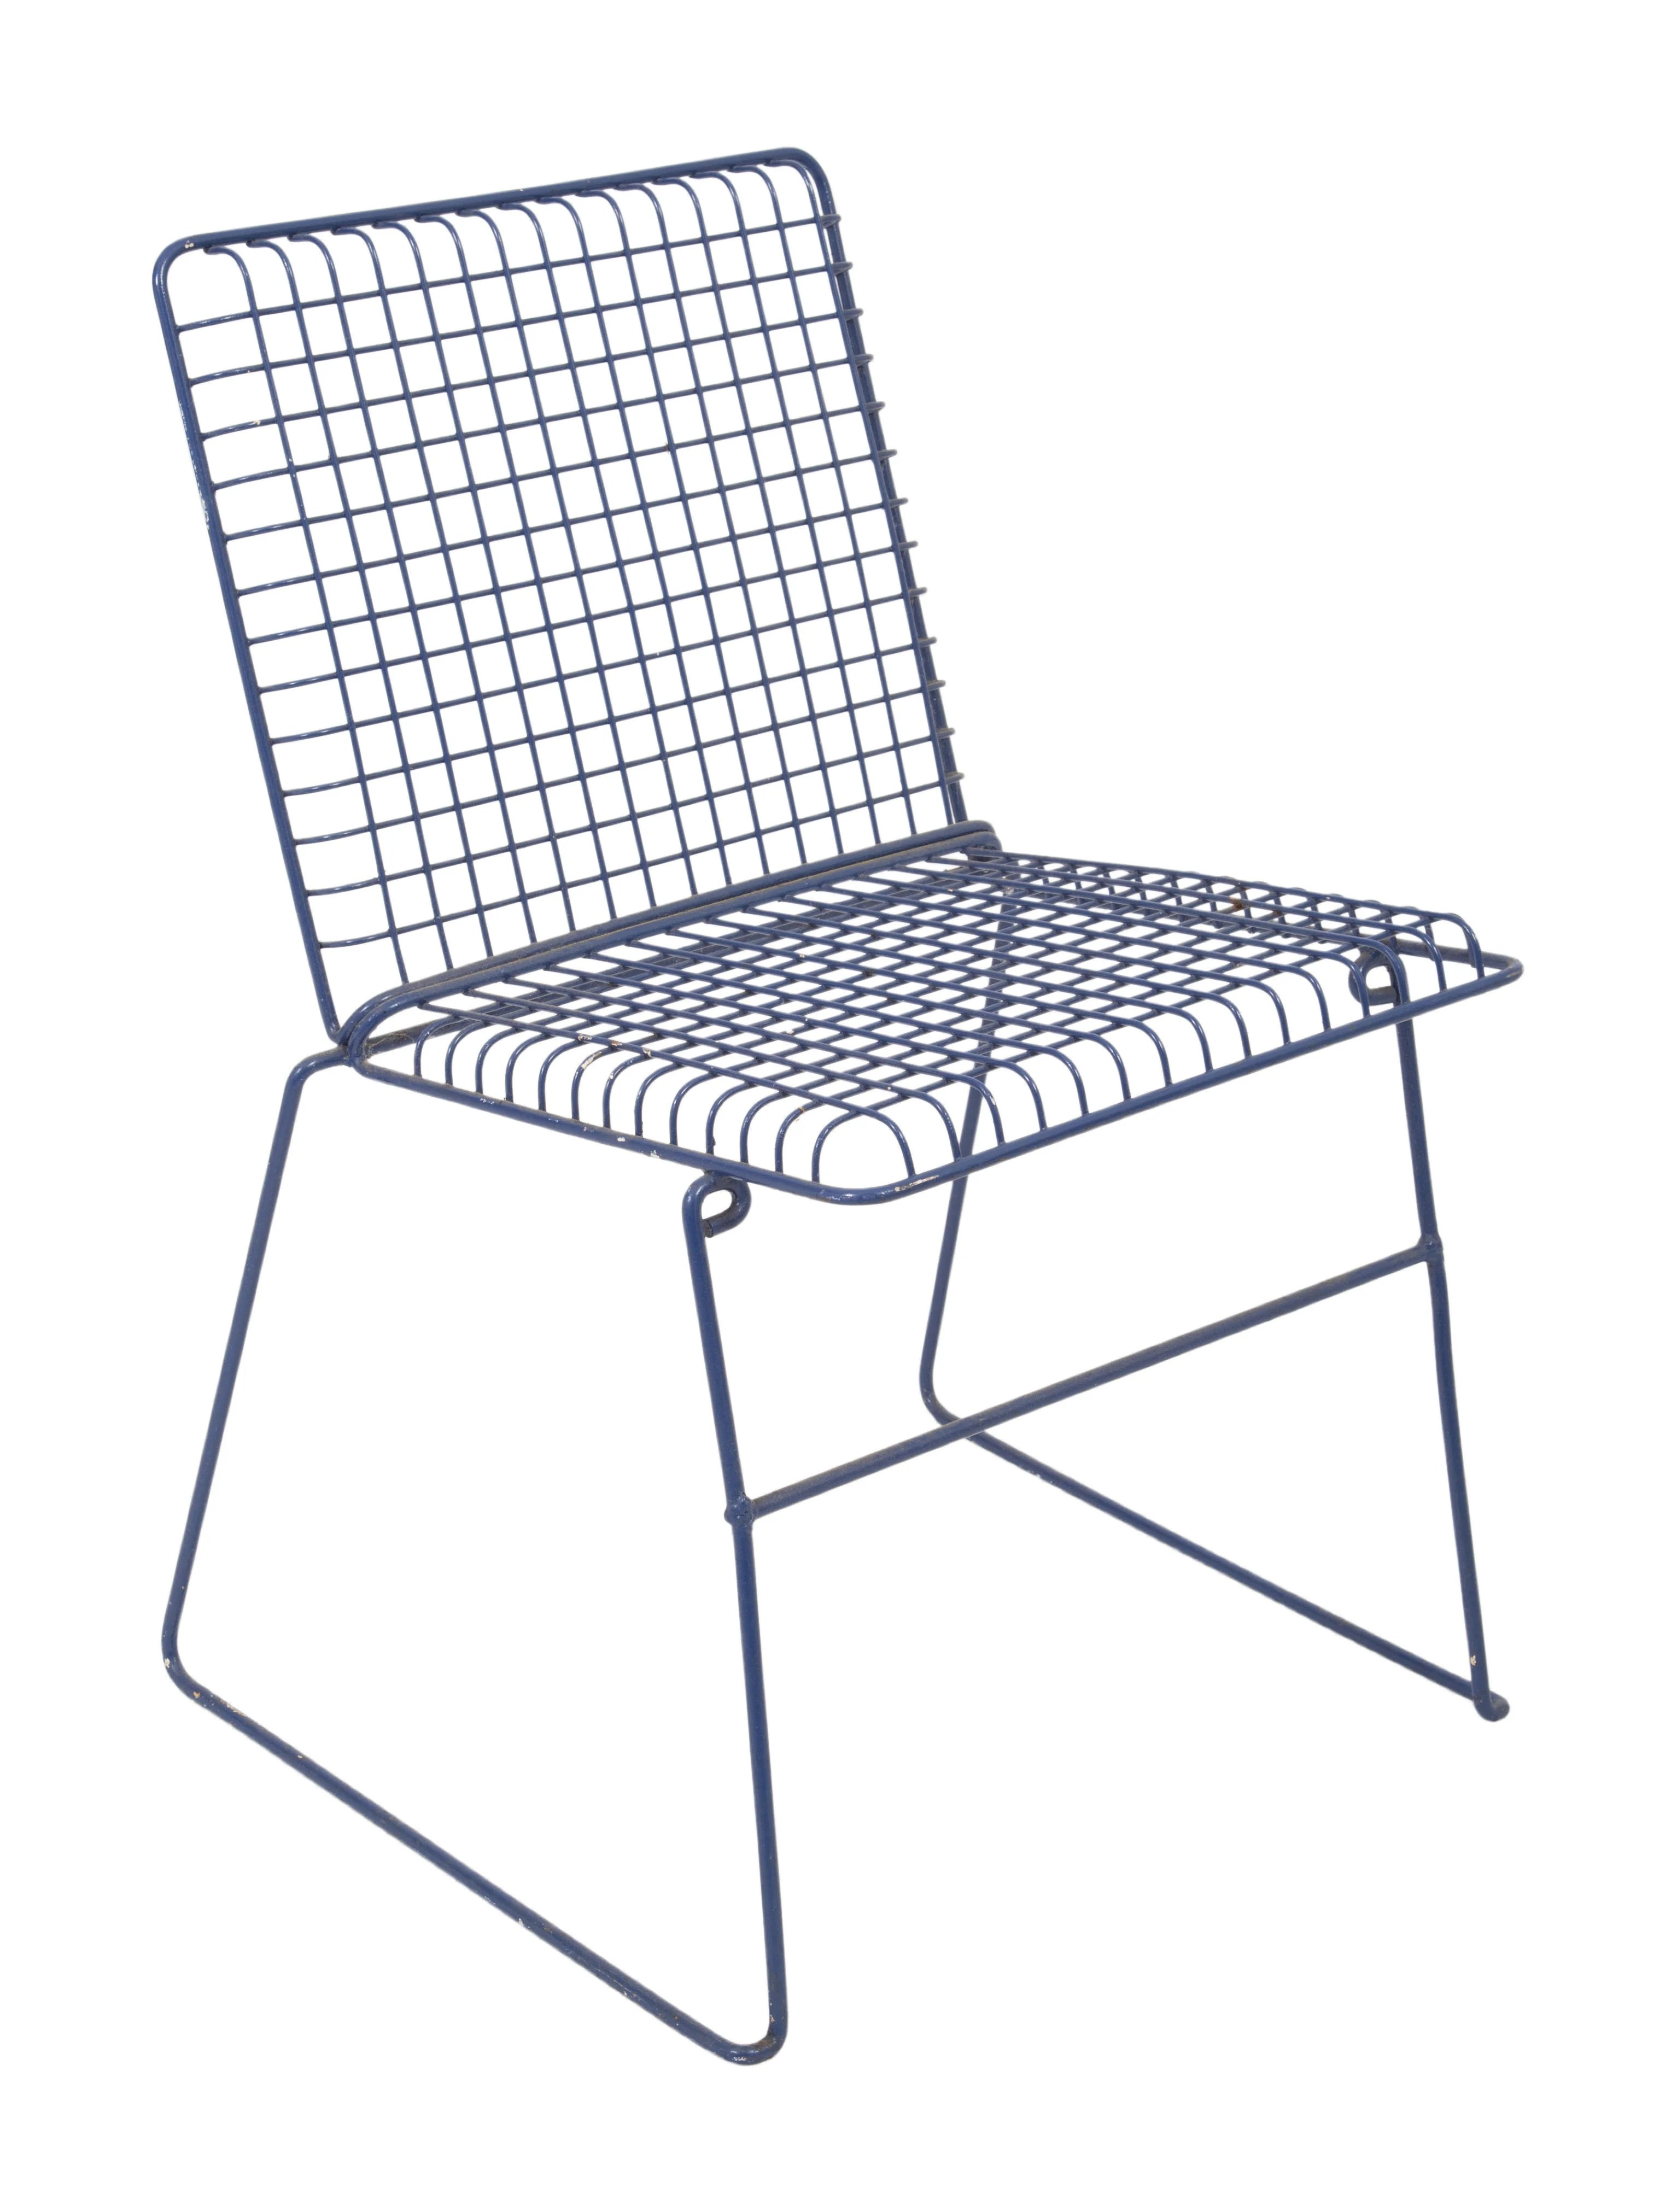 bertoia style chair white frontgate lounge covers wire chairs furniture chair20305 the